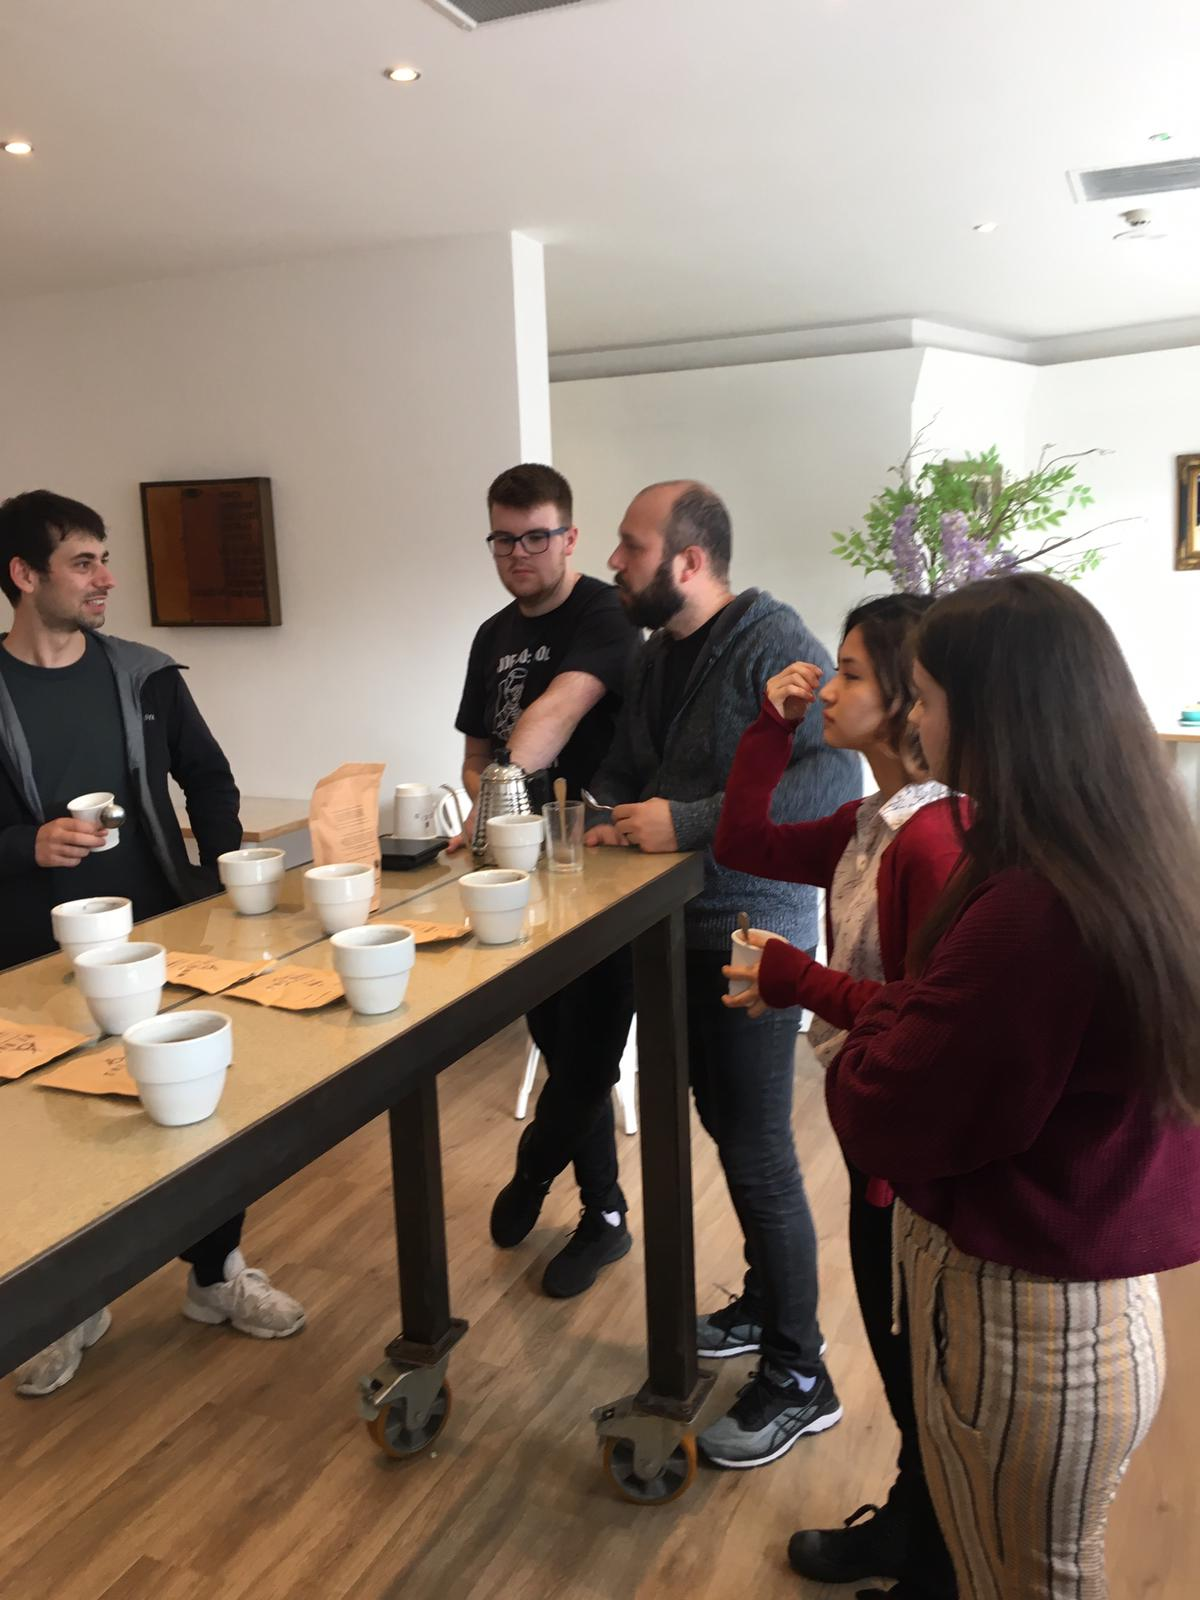 barn cupping august 2019 photo 3.jpg